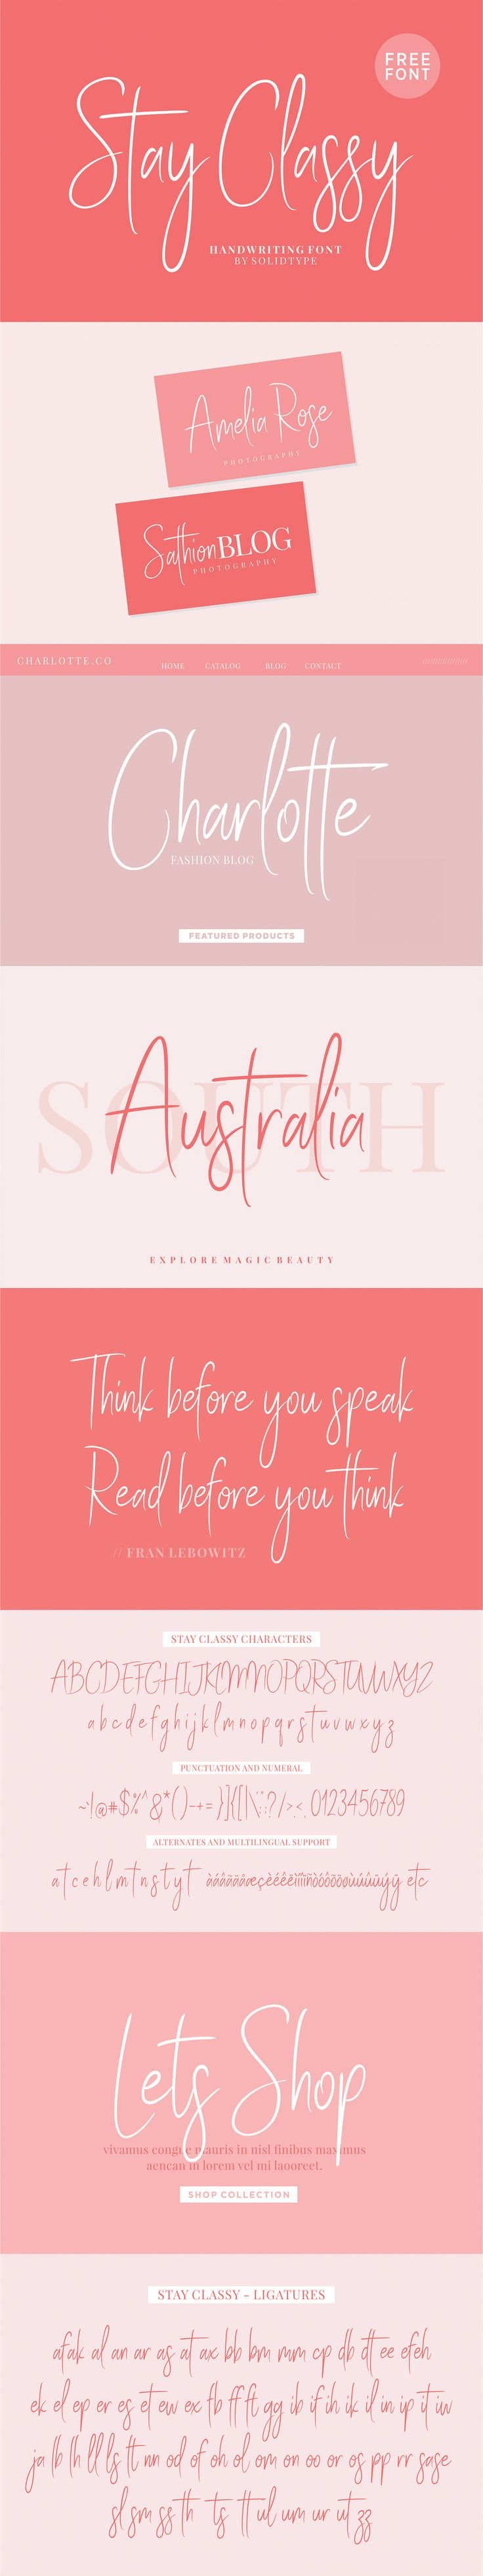 Stay Classy is handwritten script font, a contemporary font with fashionable and elegant script style. This font will perfect for many different project for blogging, social media, branding, wedding invites, cards etc.Stay Classy font including over 70 l…